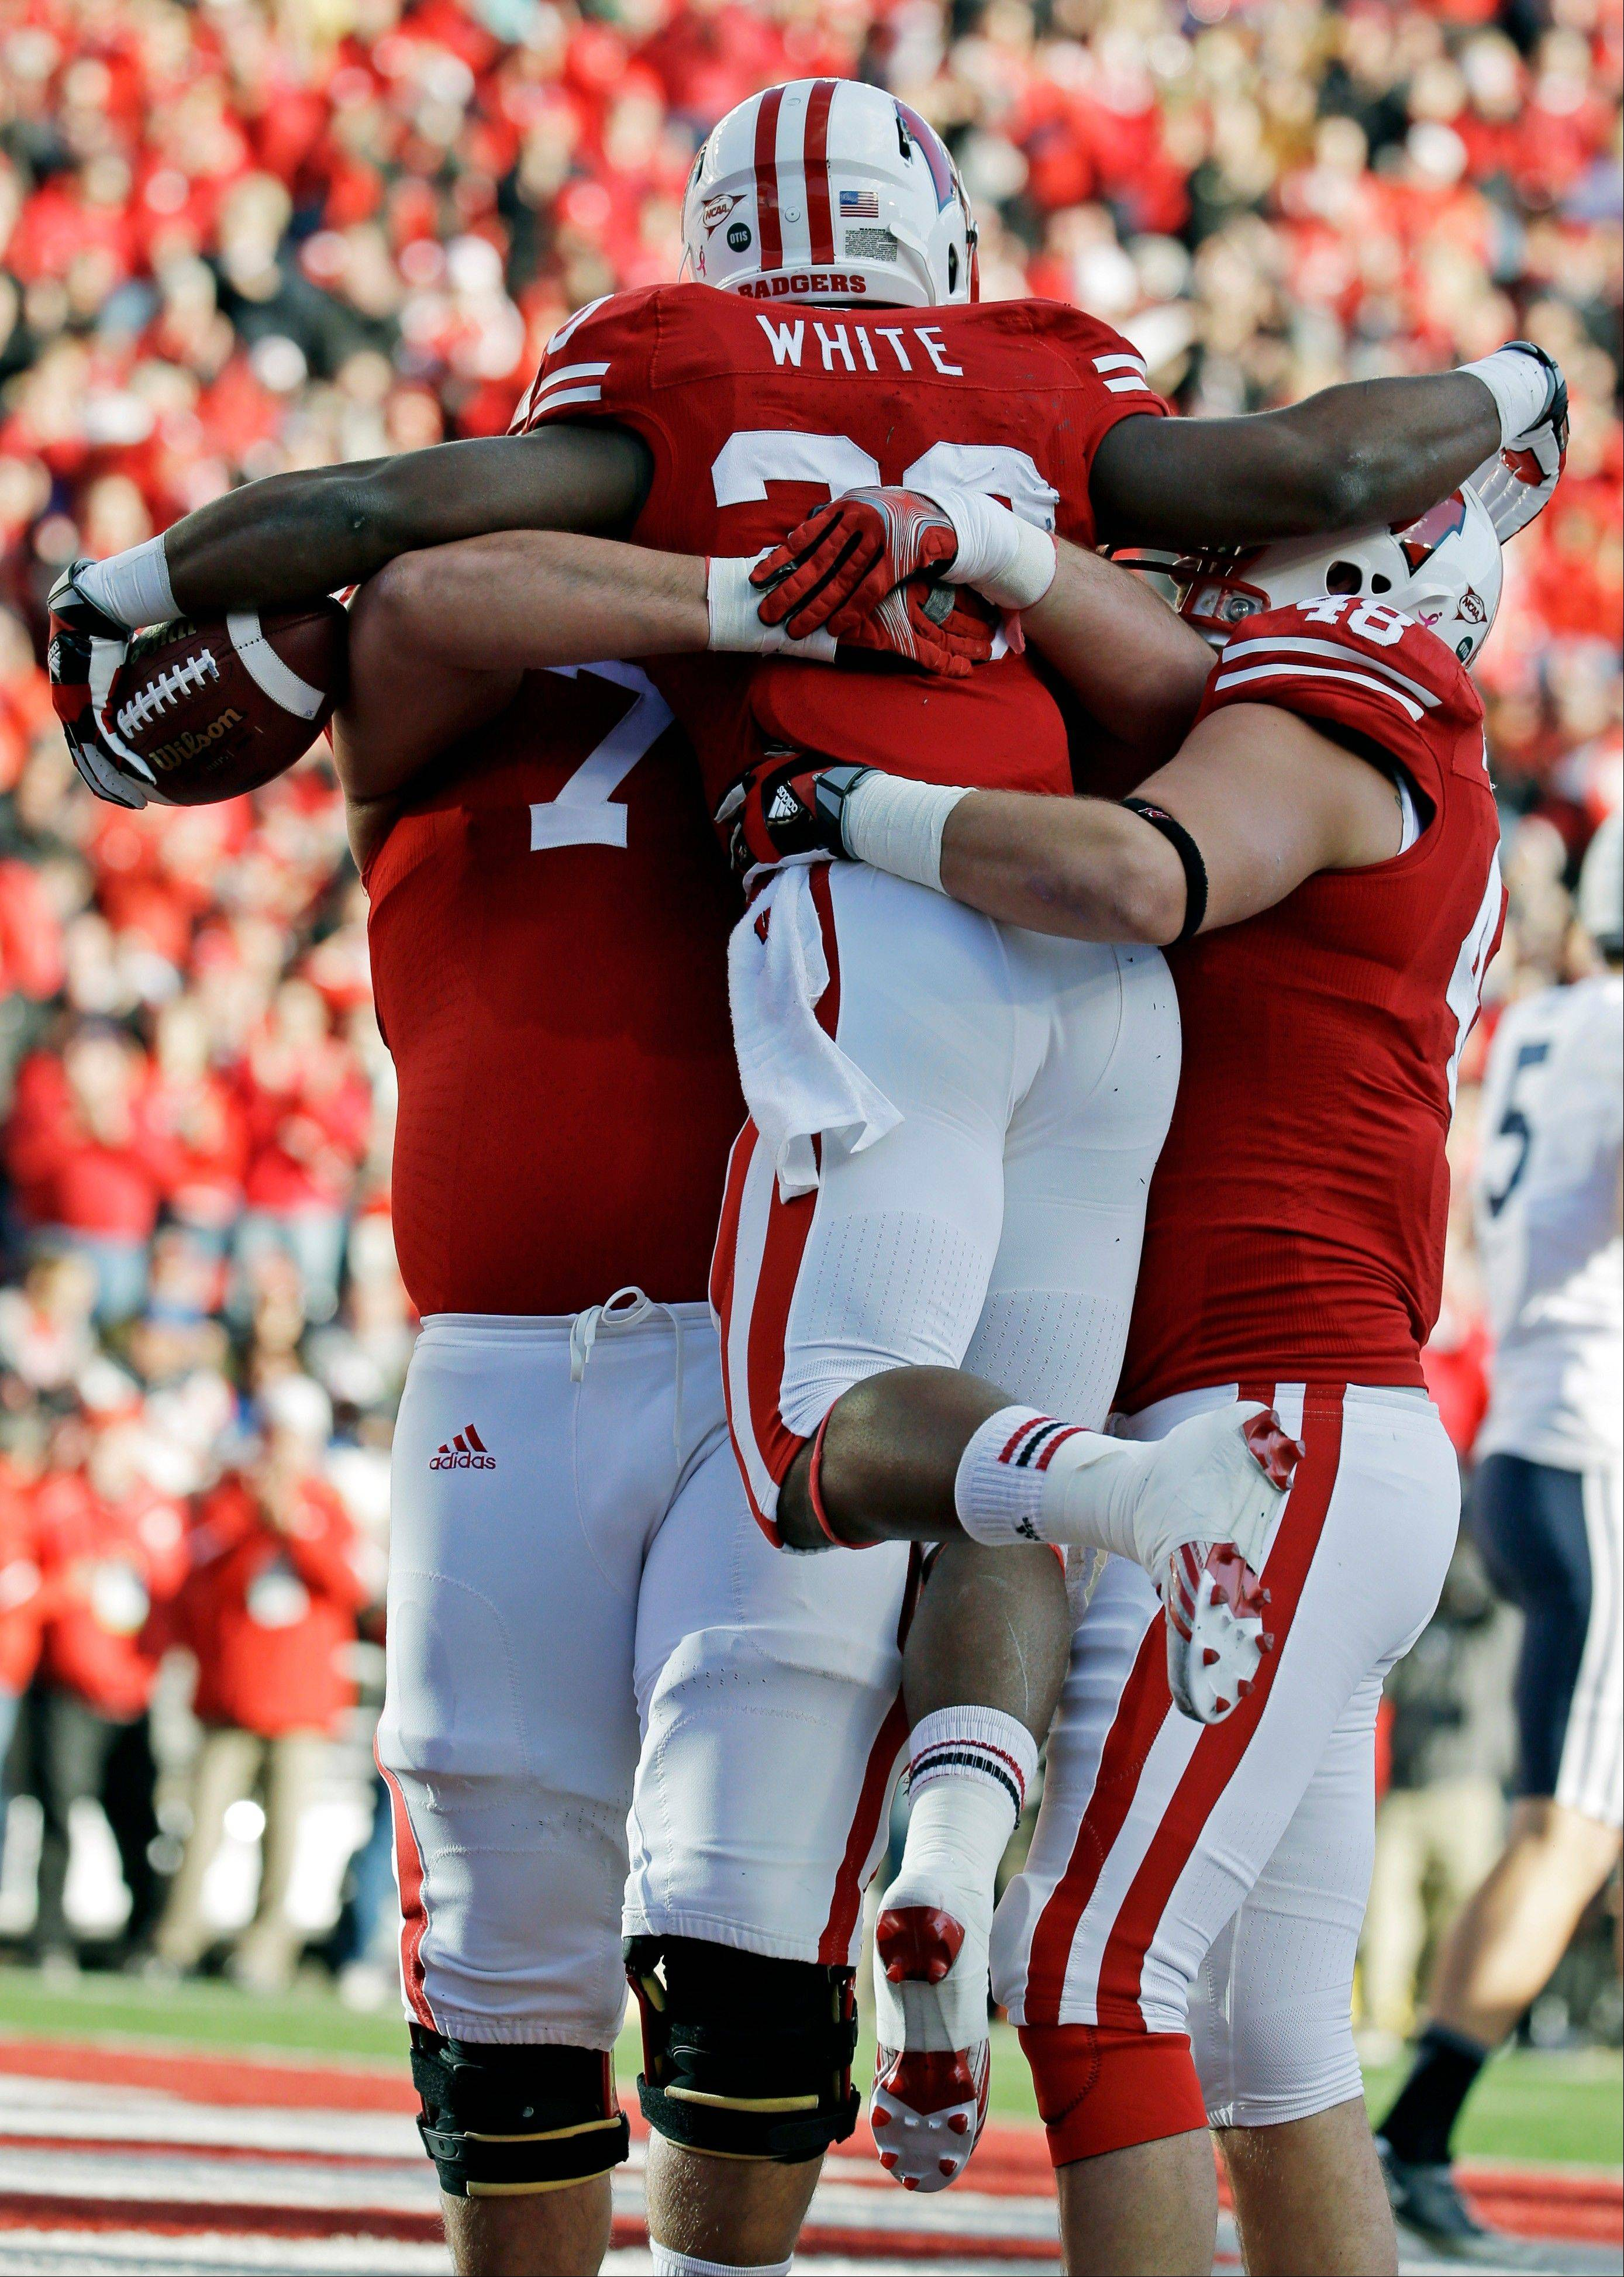 Wisconsin�s James White, center, celebrates a touchdown run with teammates Rob Havenstein (78) and Jacob Pedersen (48) during Saturday�s game against Brigham Young in Madison.